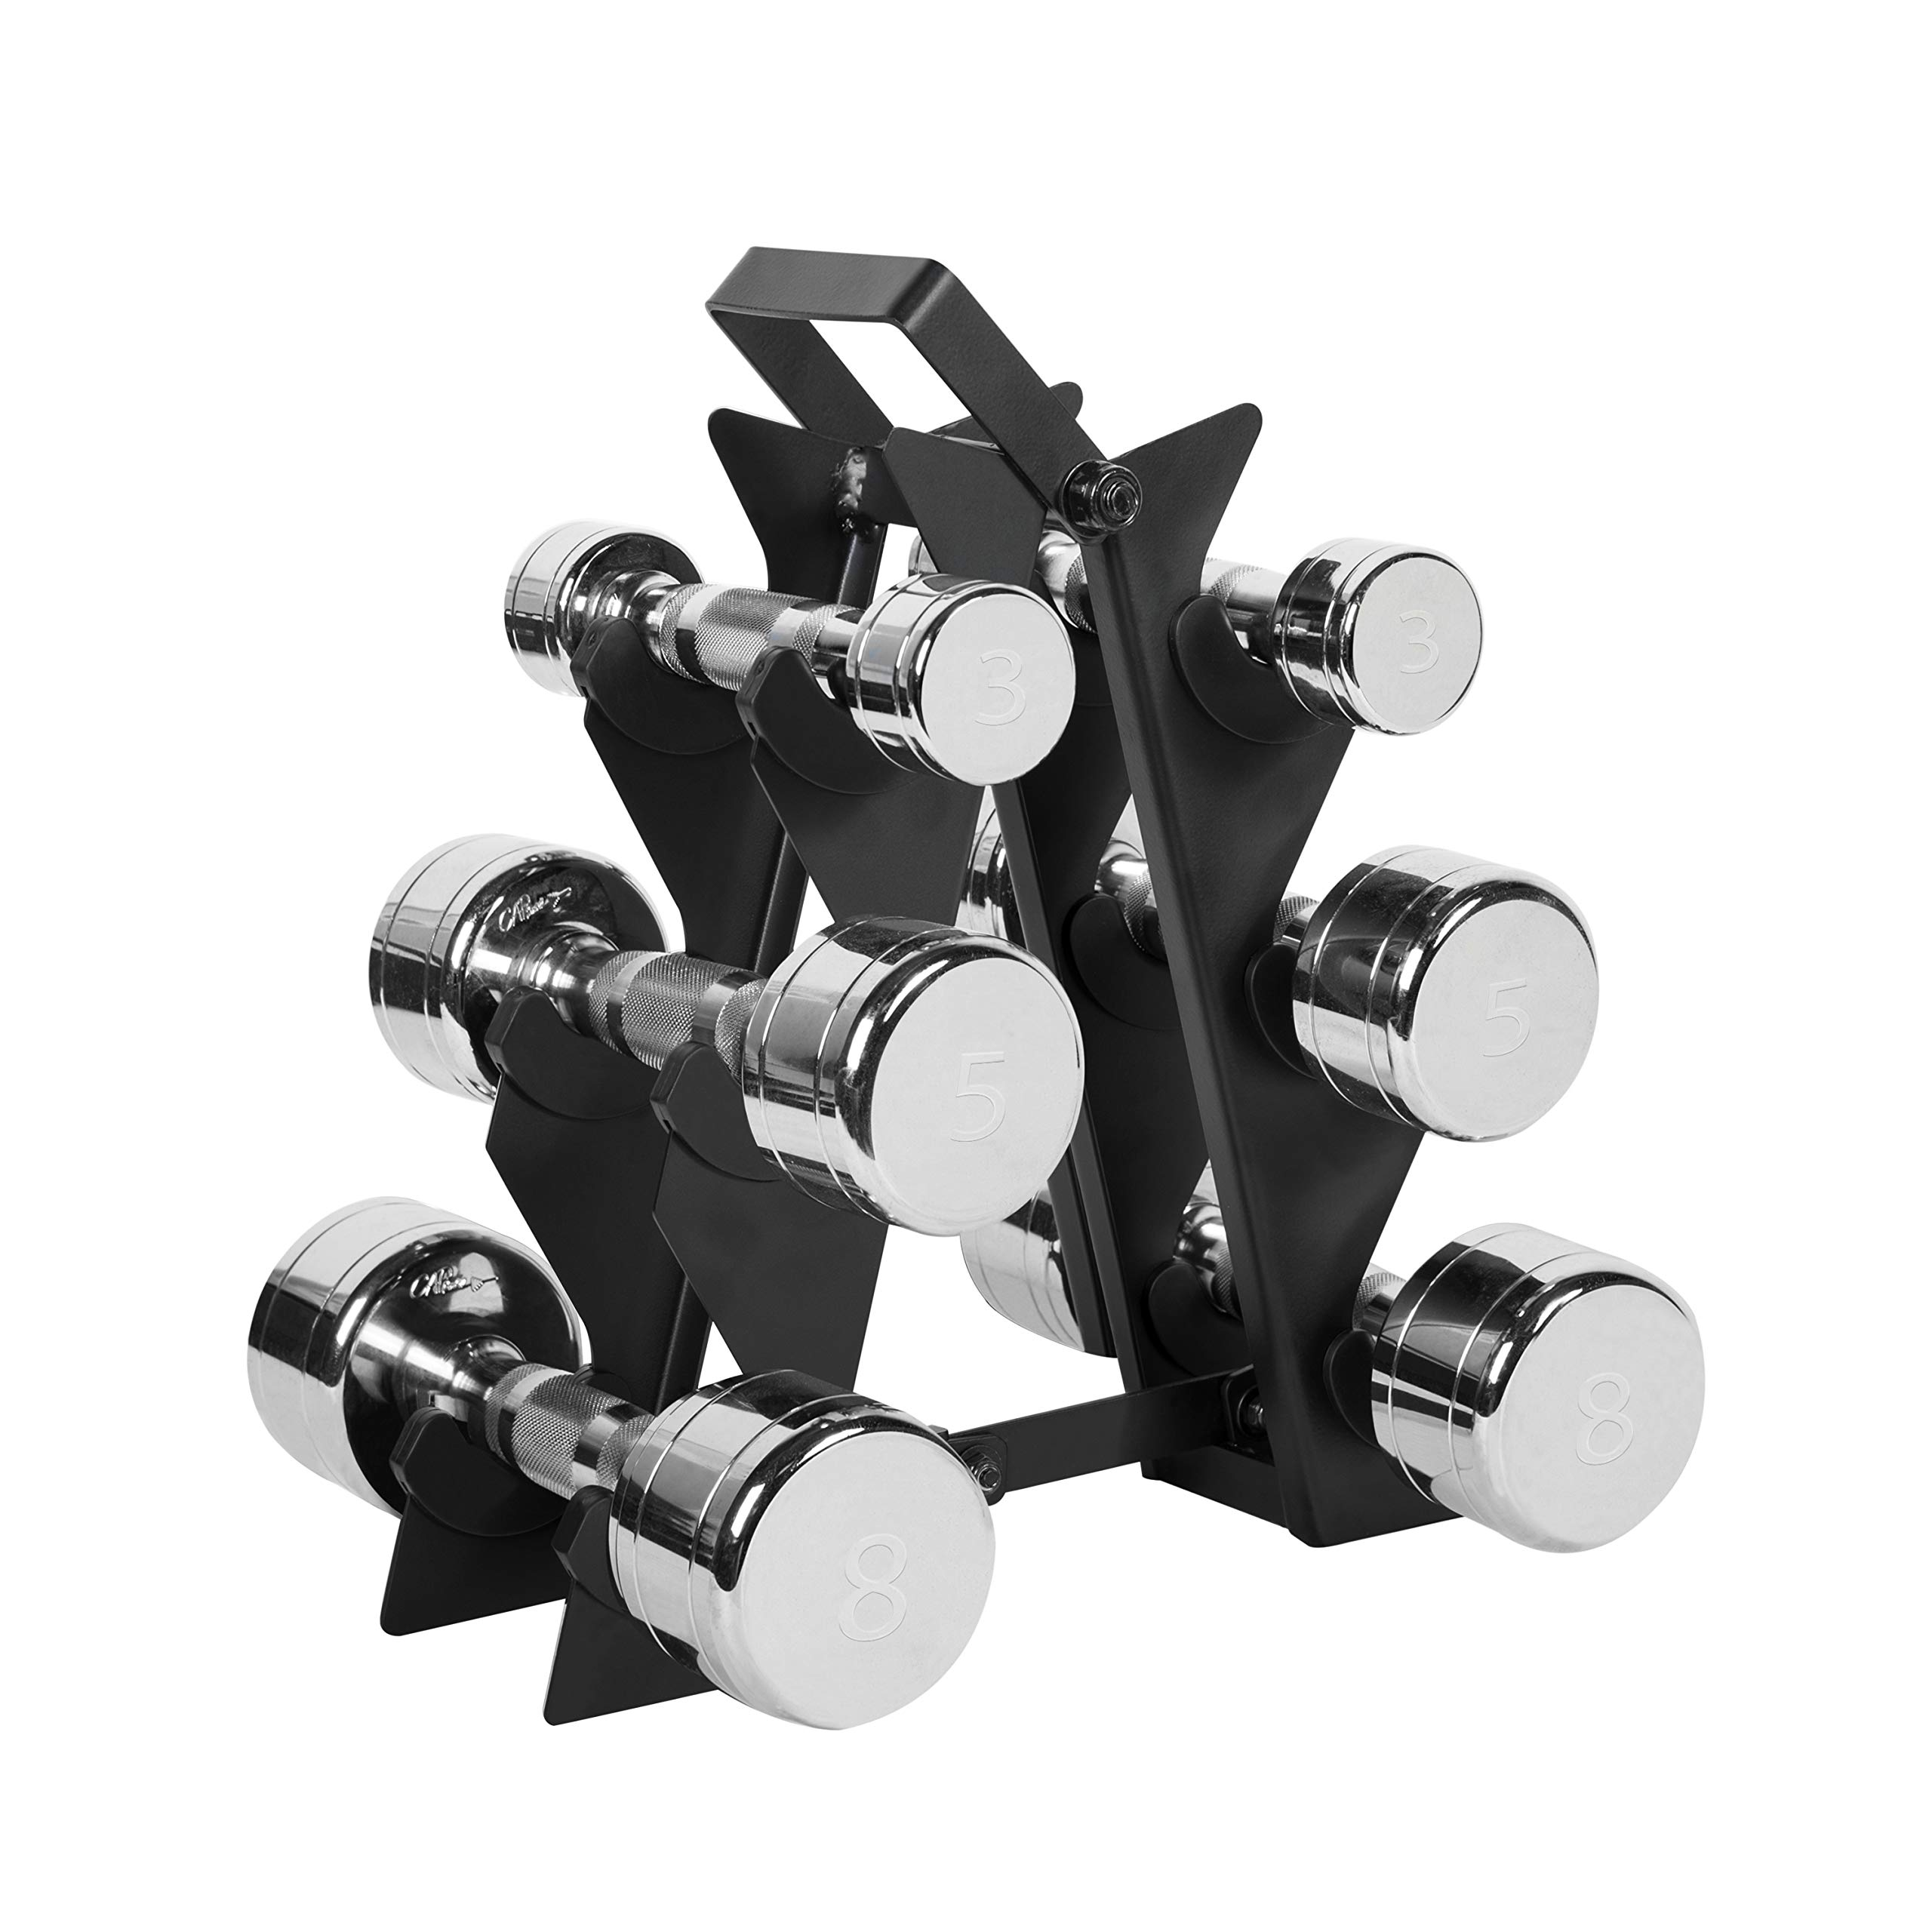 WF Athletic Supply Dumbbell Set with Storage Rack (32 LB Chrome Dumbbell Set) by WF Athletic Supply